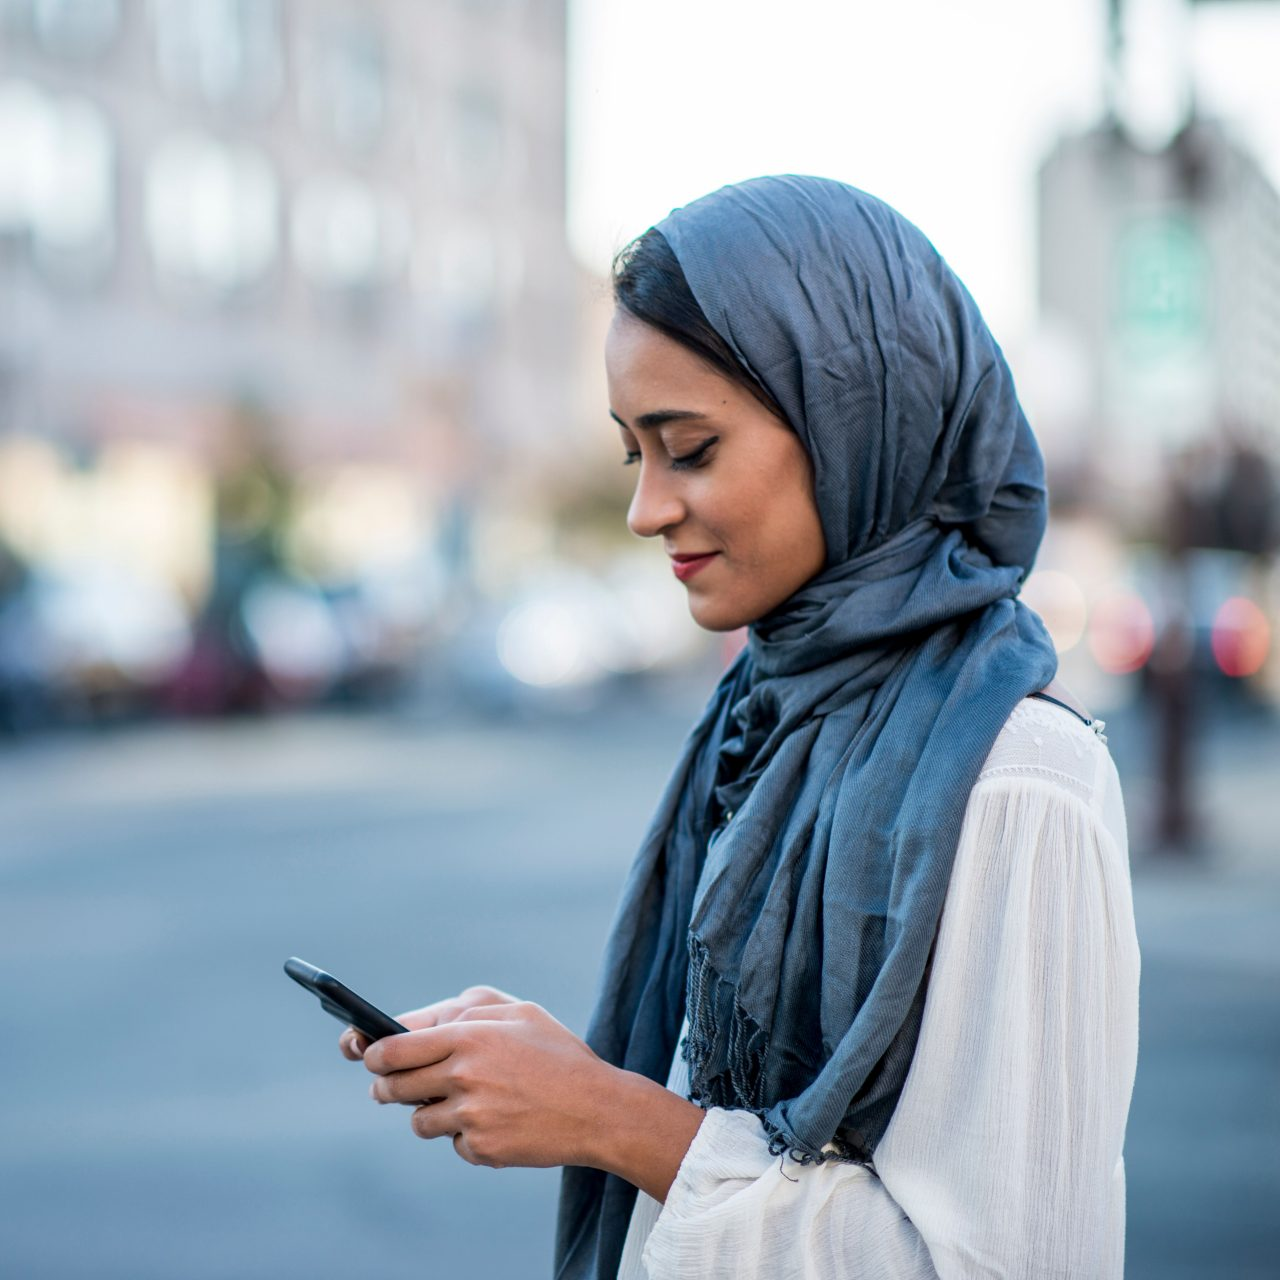 Woman smiling down at phone outside